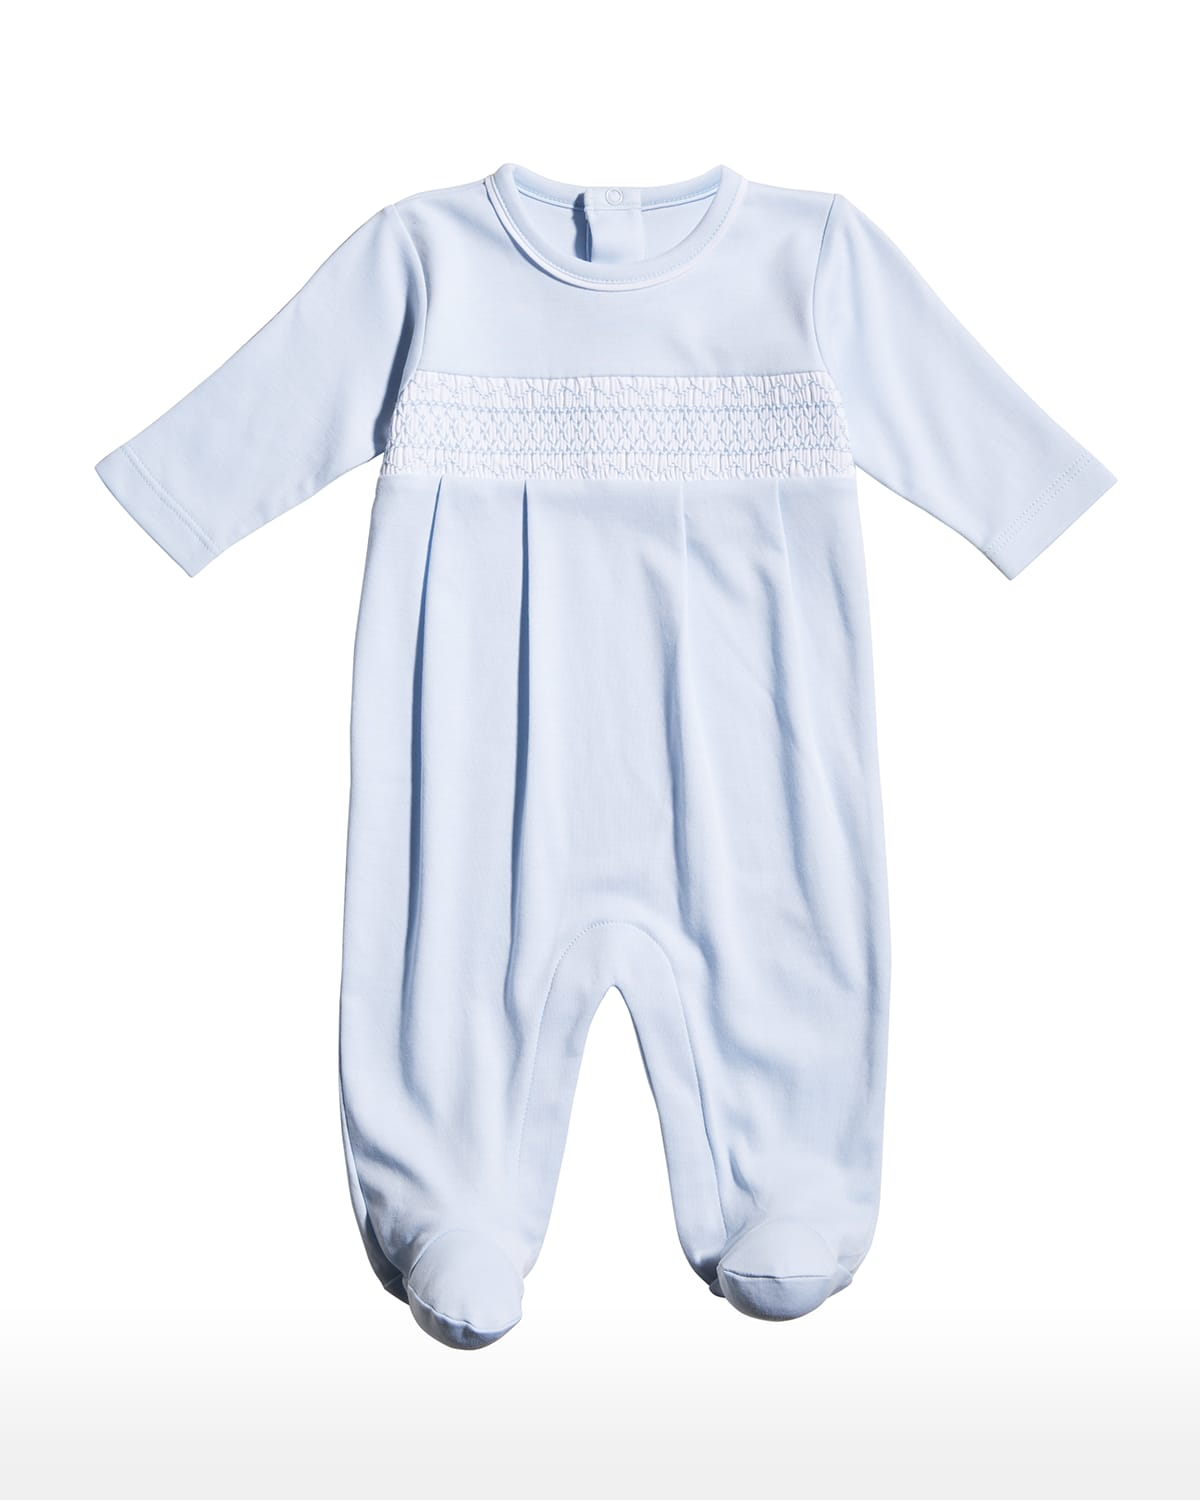 Boy's CLB Fall Embroidered Footie Pajamas